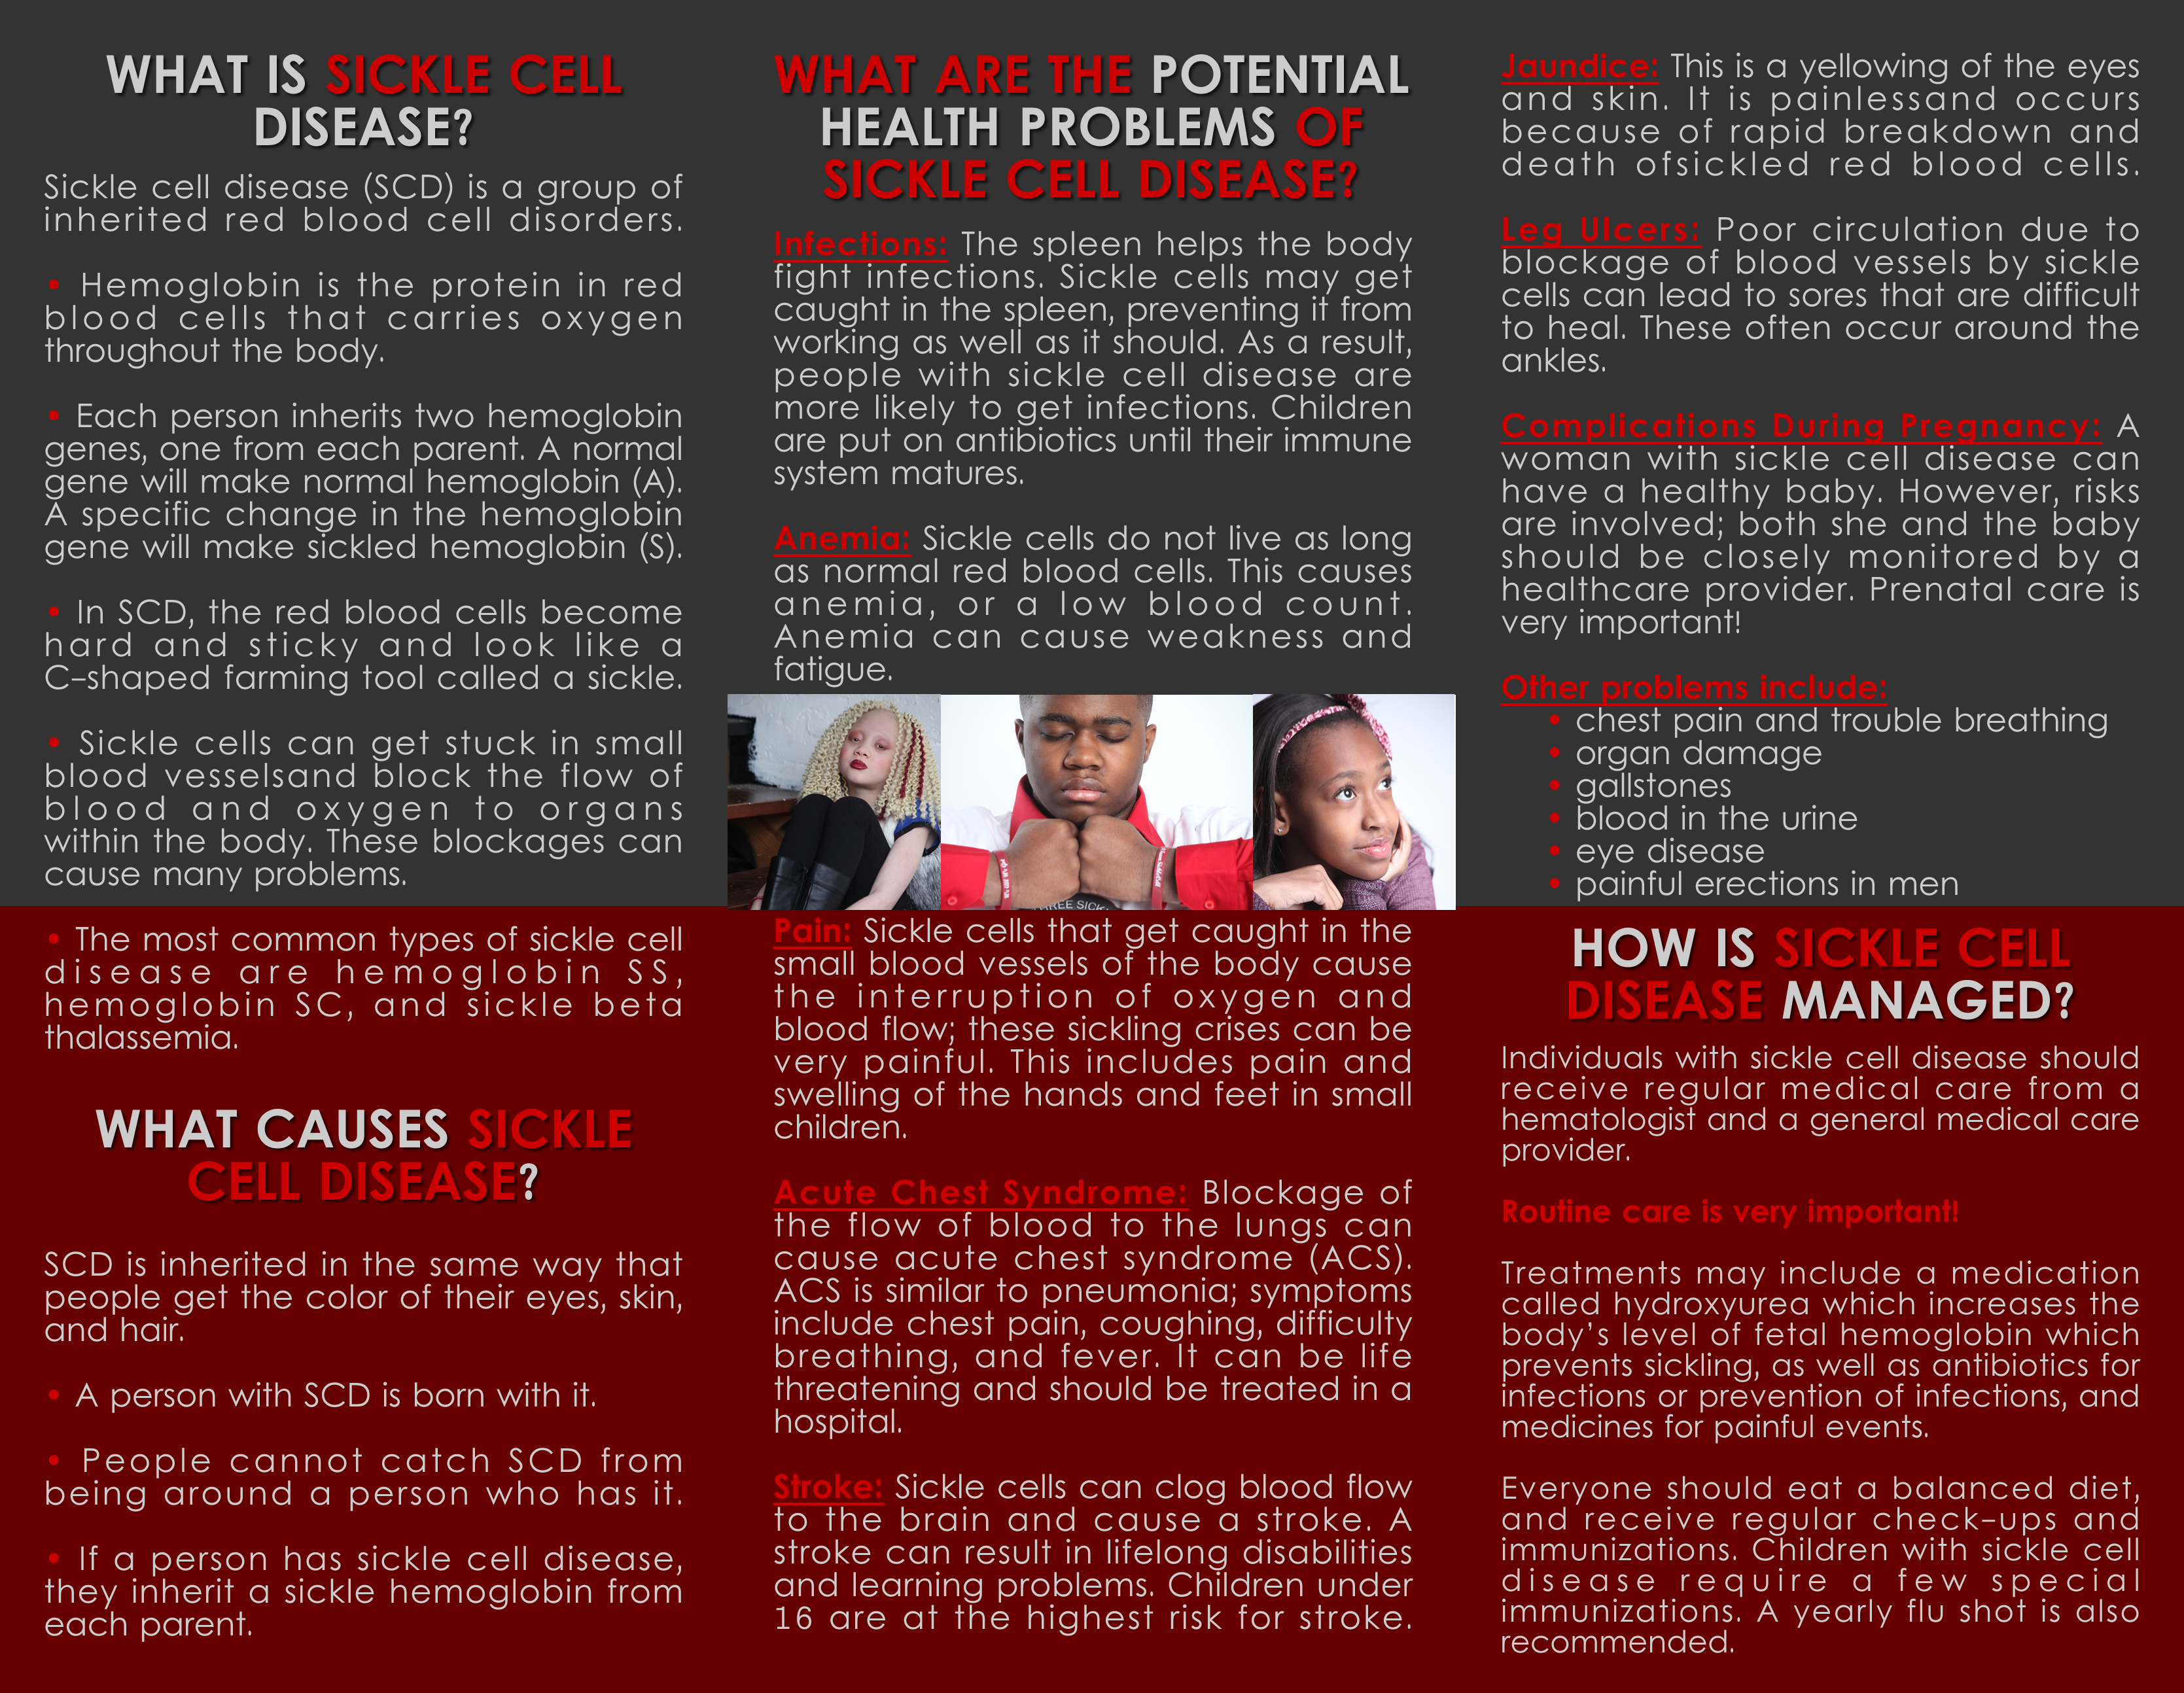 mts-sickle-cell-brochure-back-page